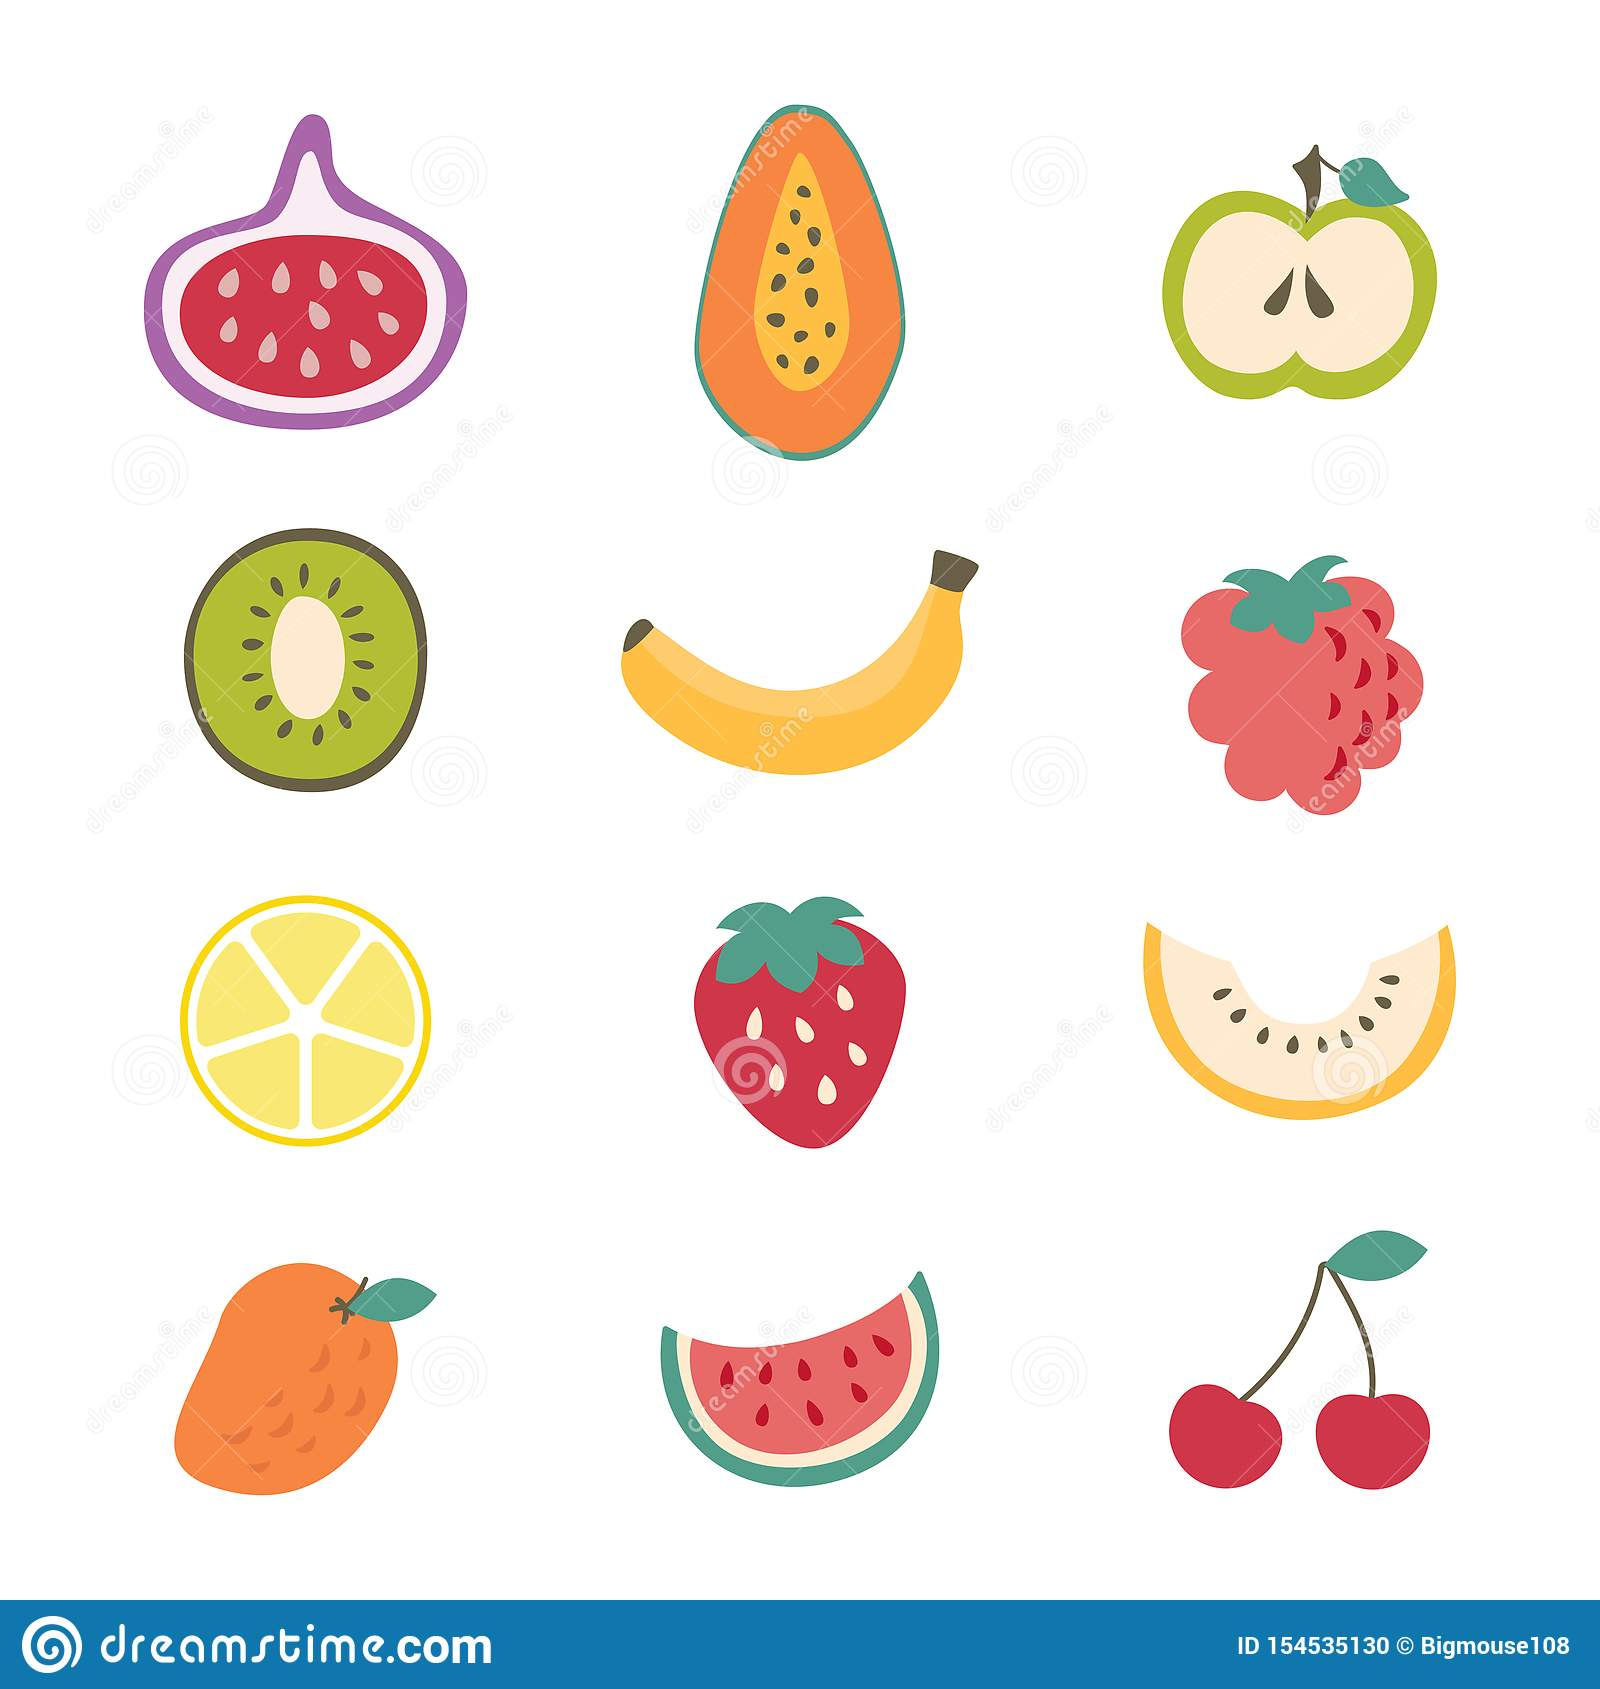 draw the different types of fruits - Clip Art Library